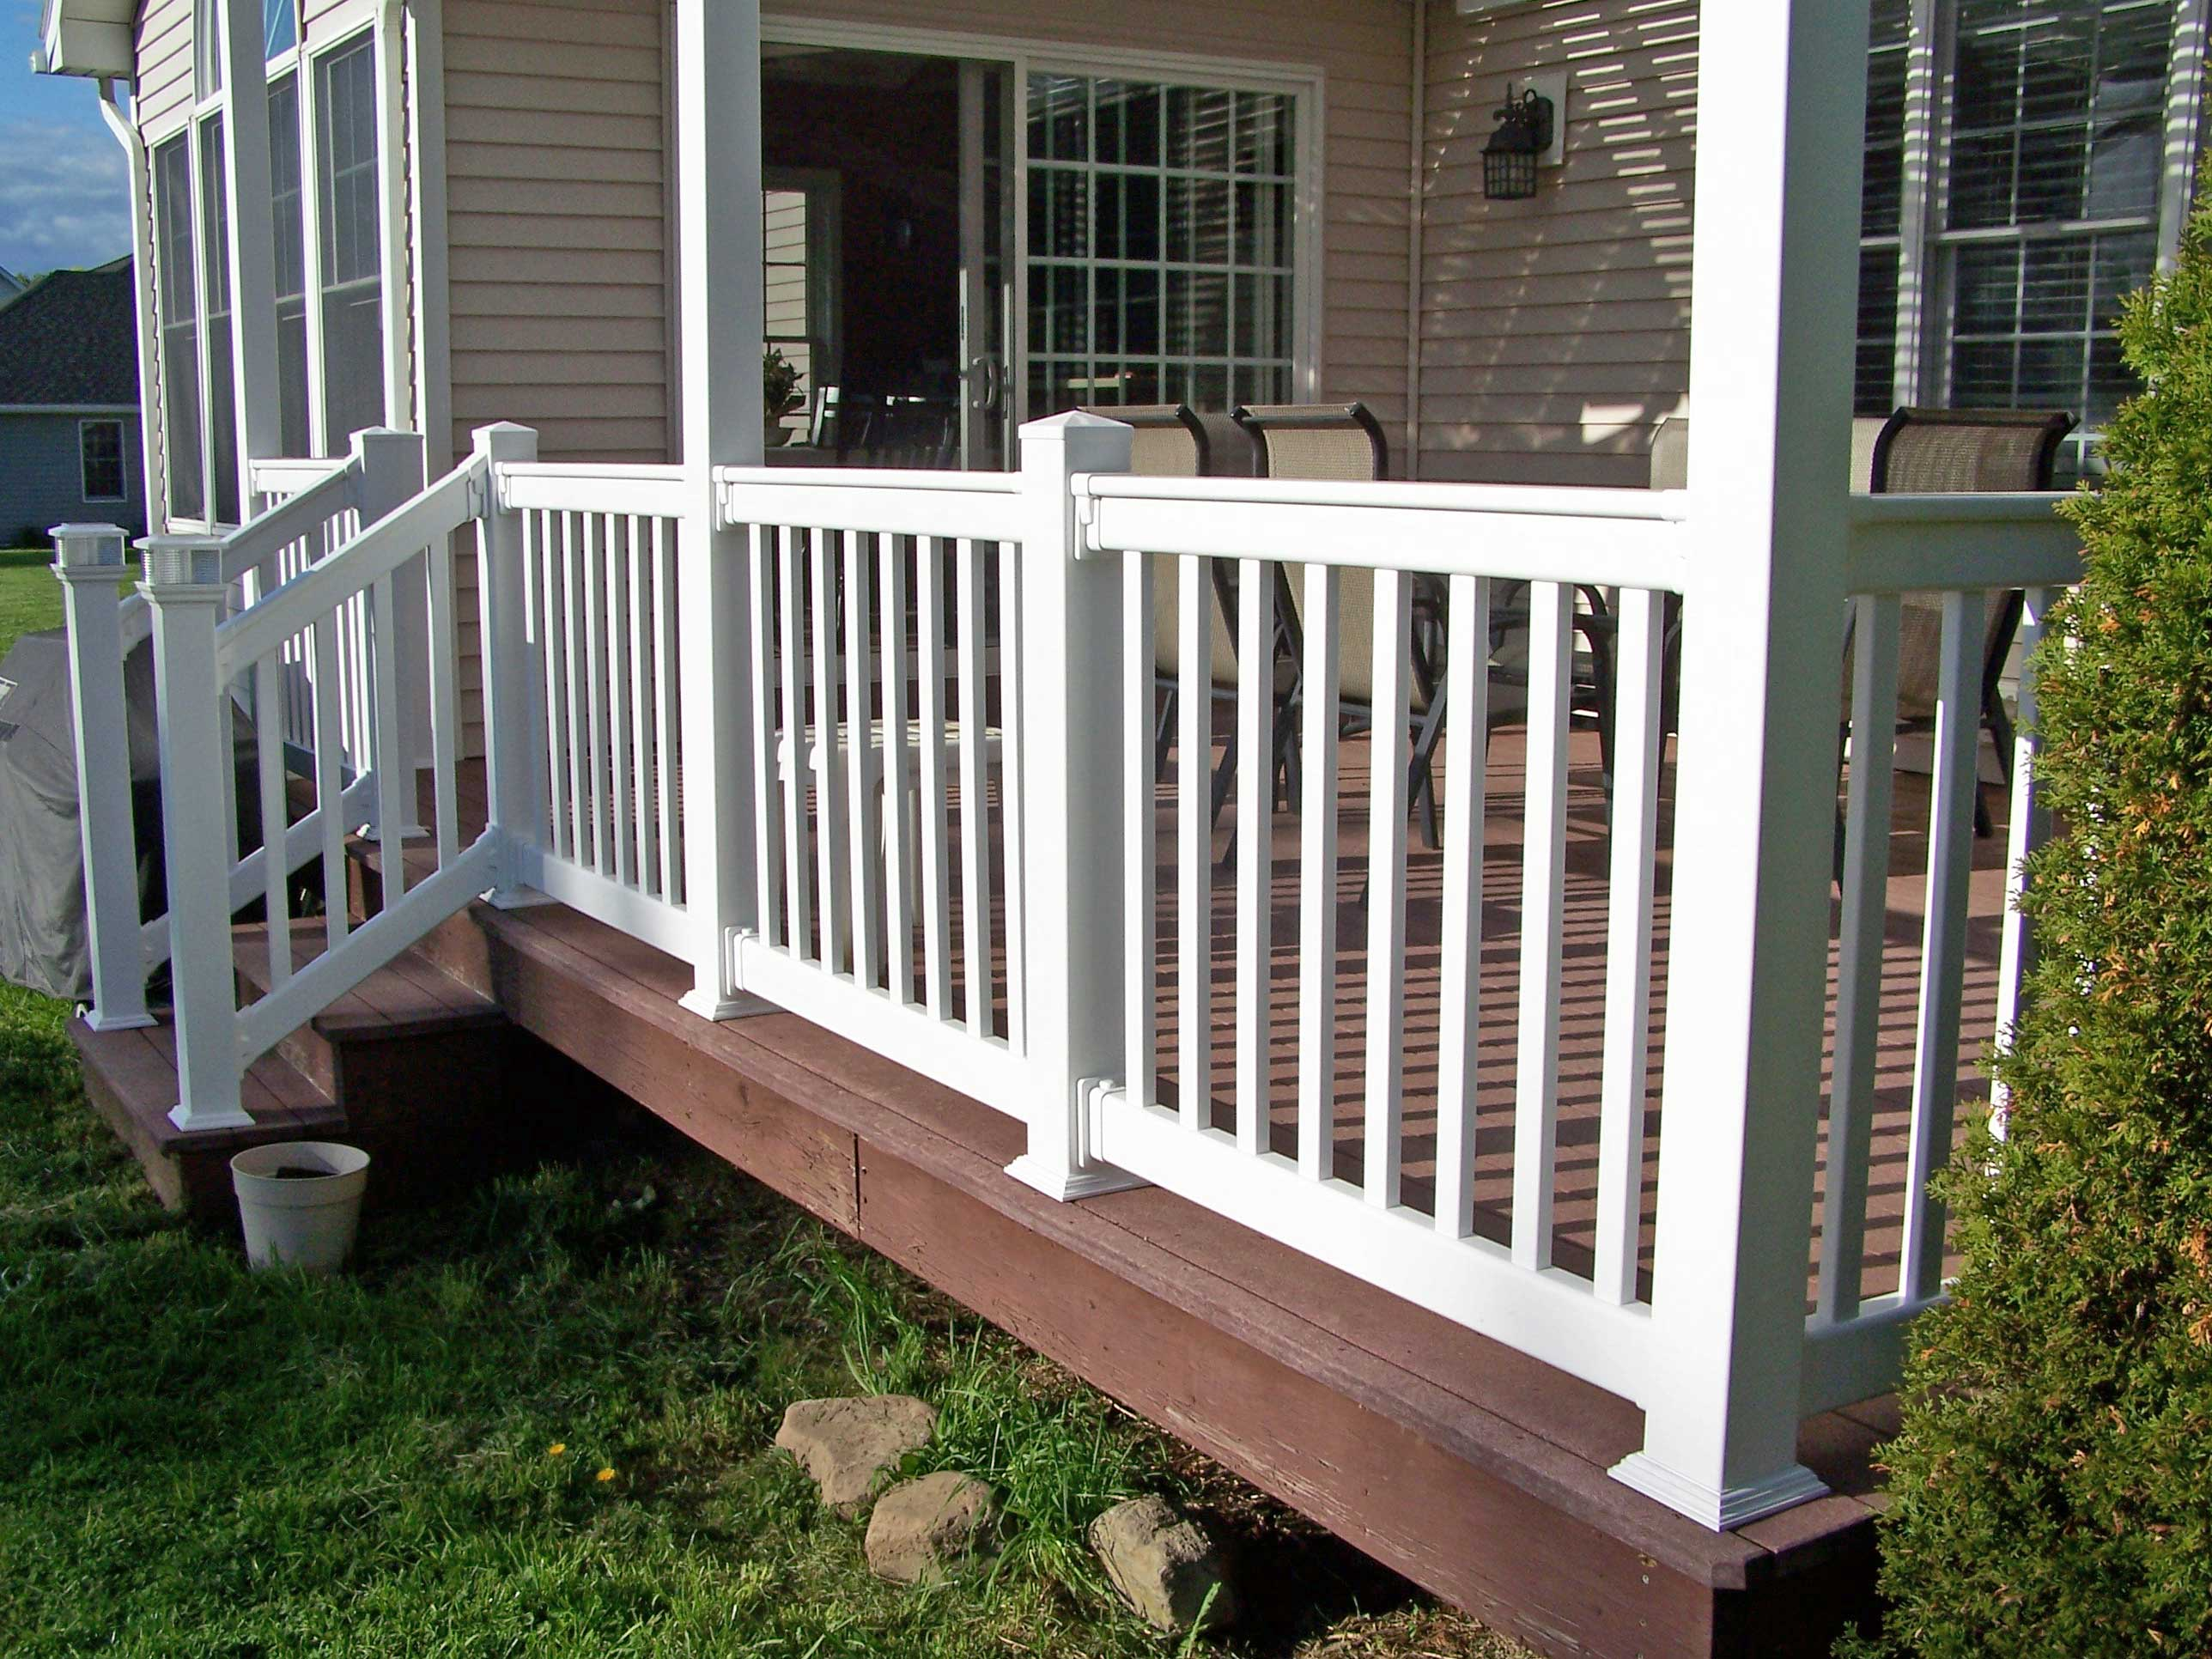 Railings at wholesale fence and railings llc rochester ny railing back deck railing solutioingenieria Images